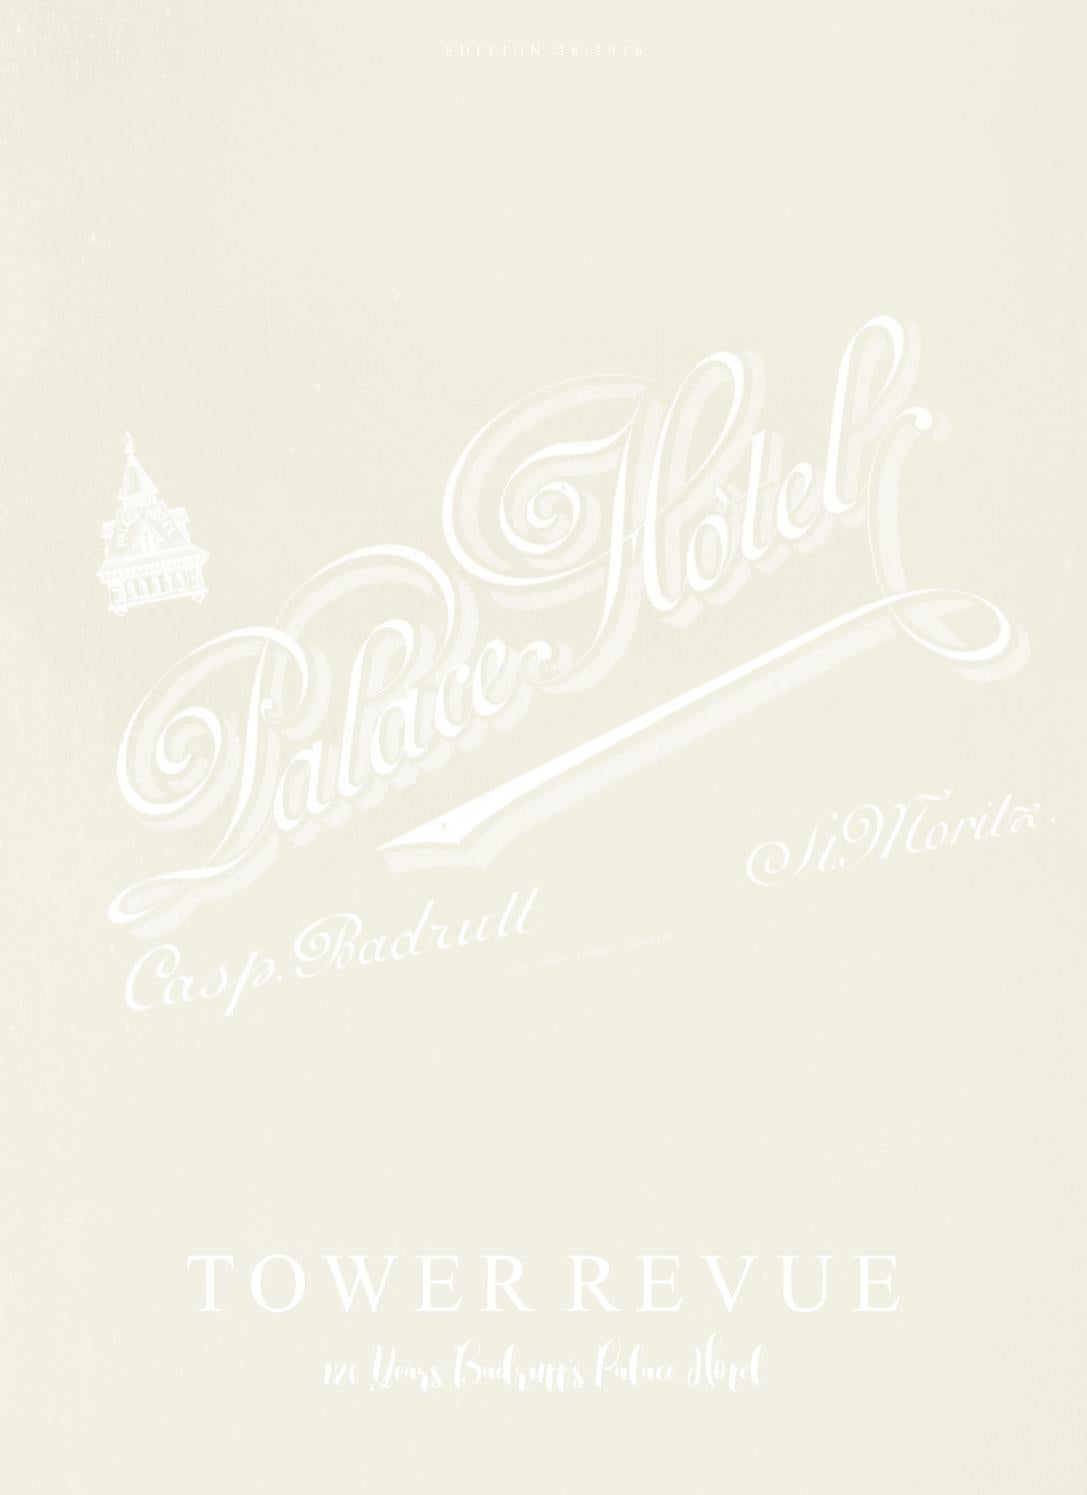 Towerrevue 28.2016 by PREMIUM PUBLISHING - issuu